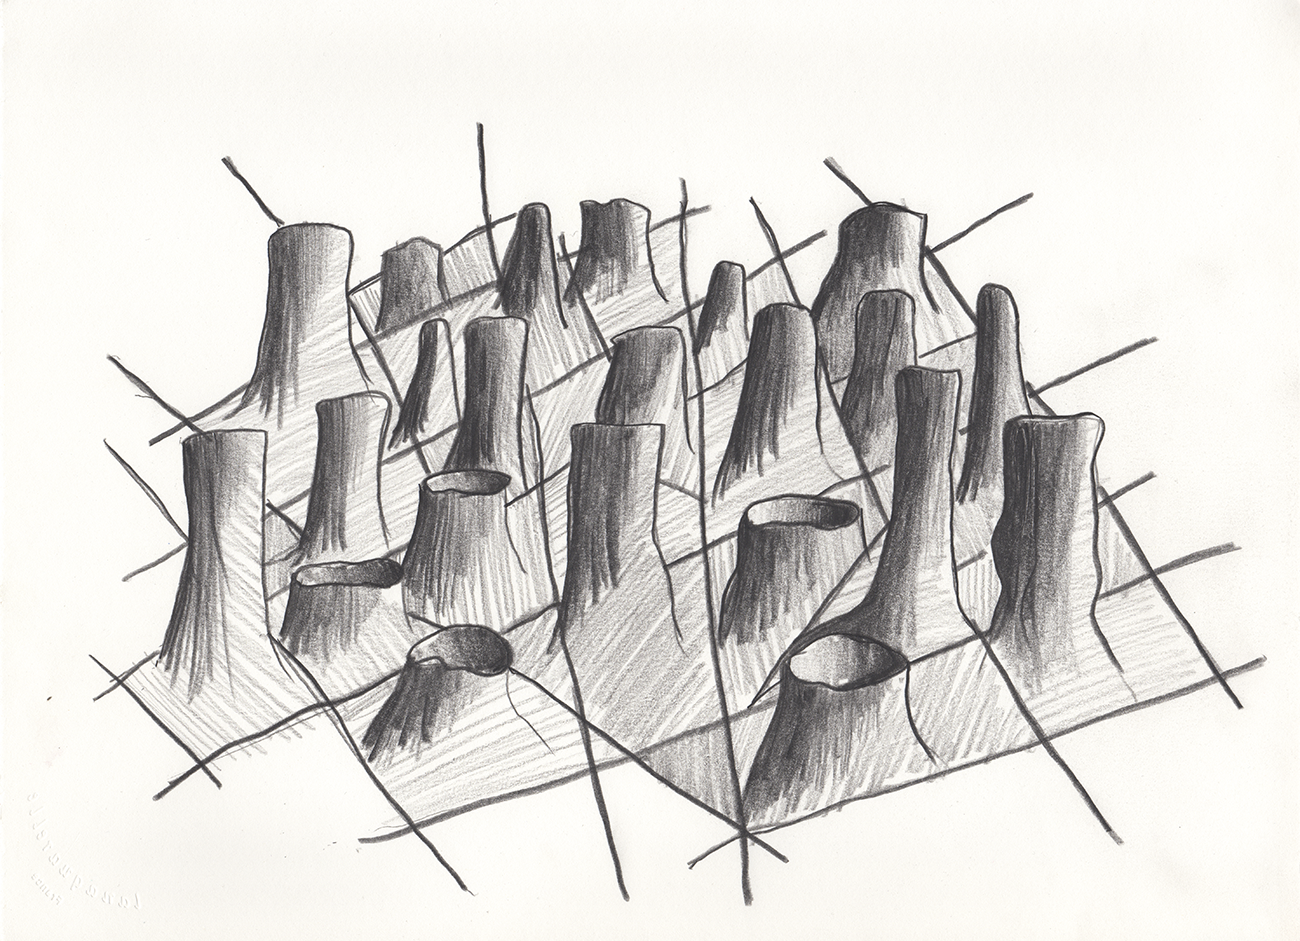 Clothing Sculpture Drawing: Sleeve Landscape 1